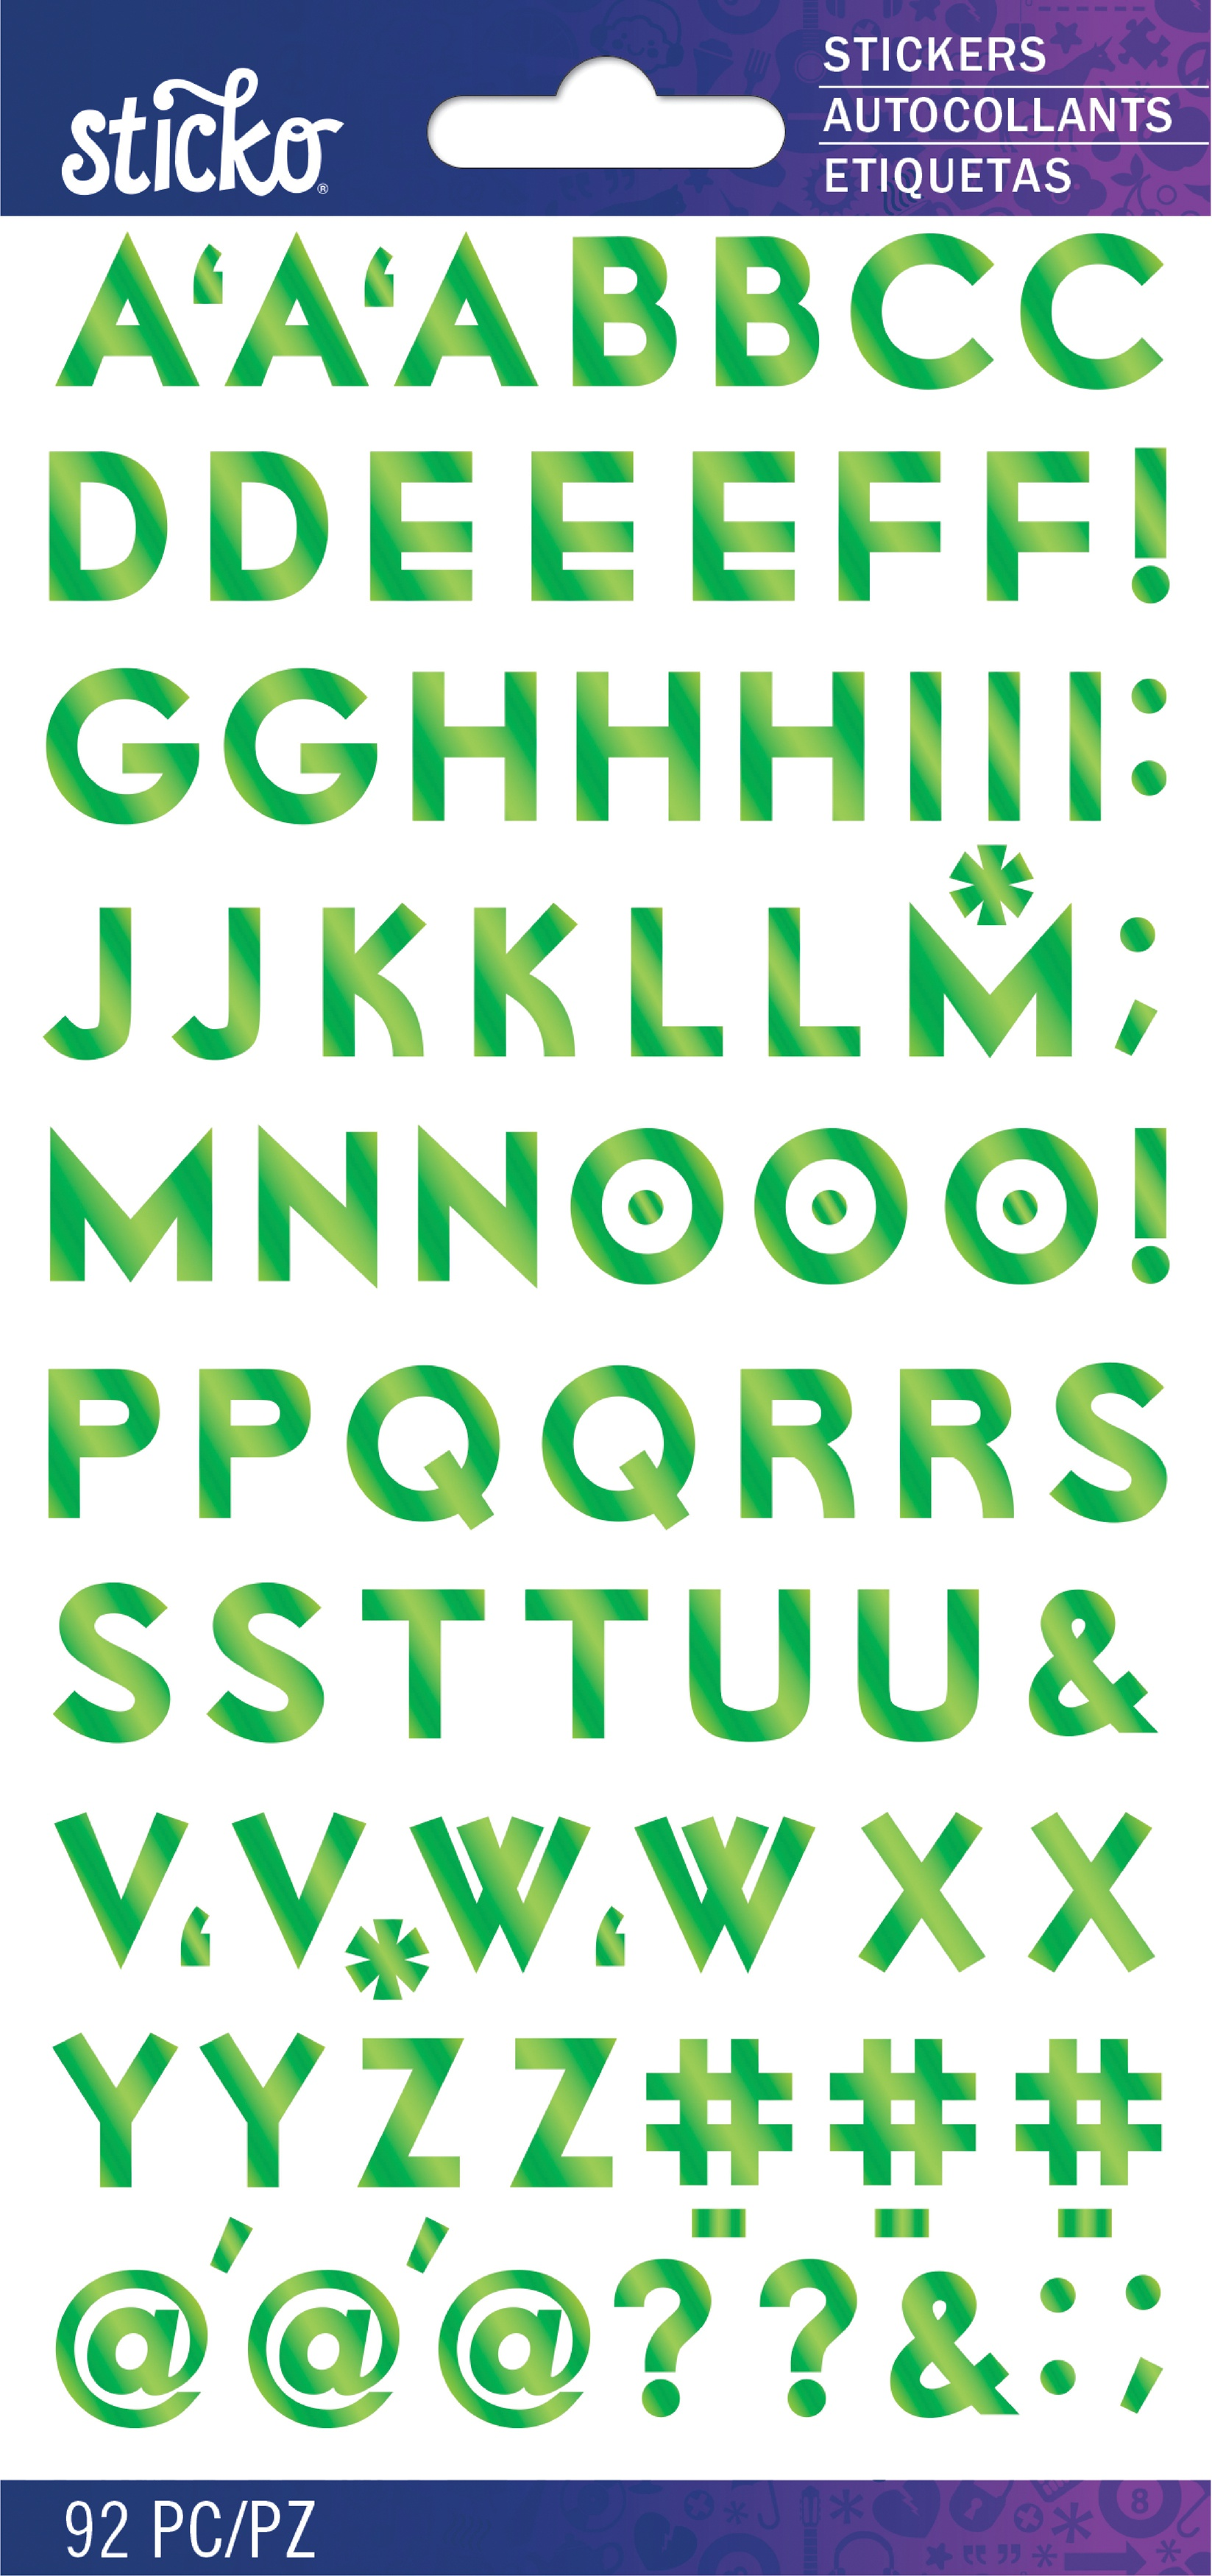 Sticko Iridescent Small Alphabet Stickers-Green Futura